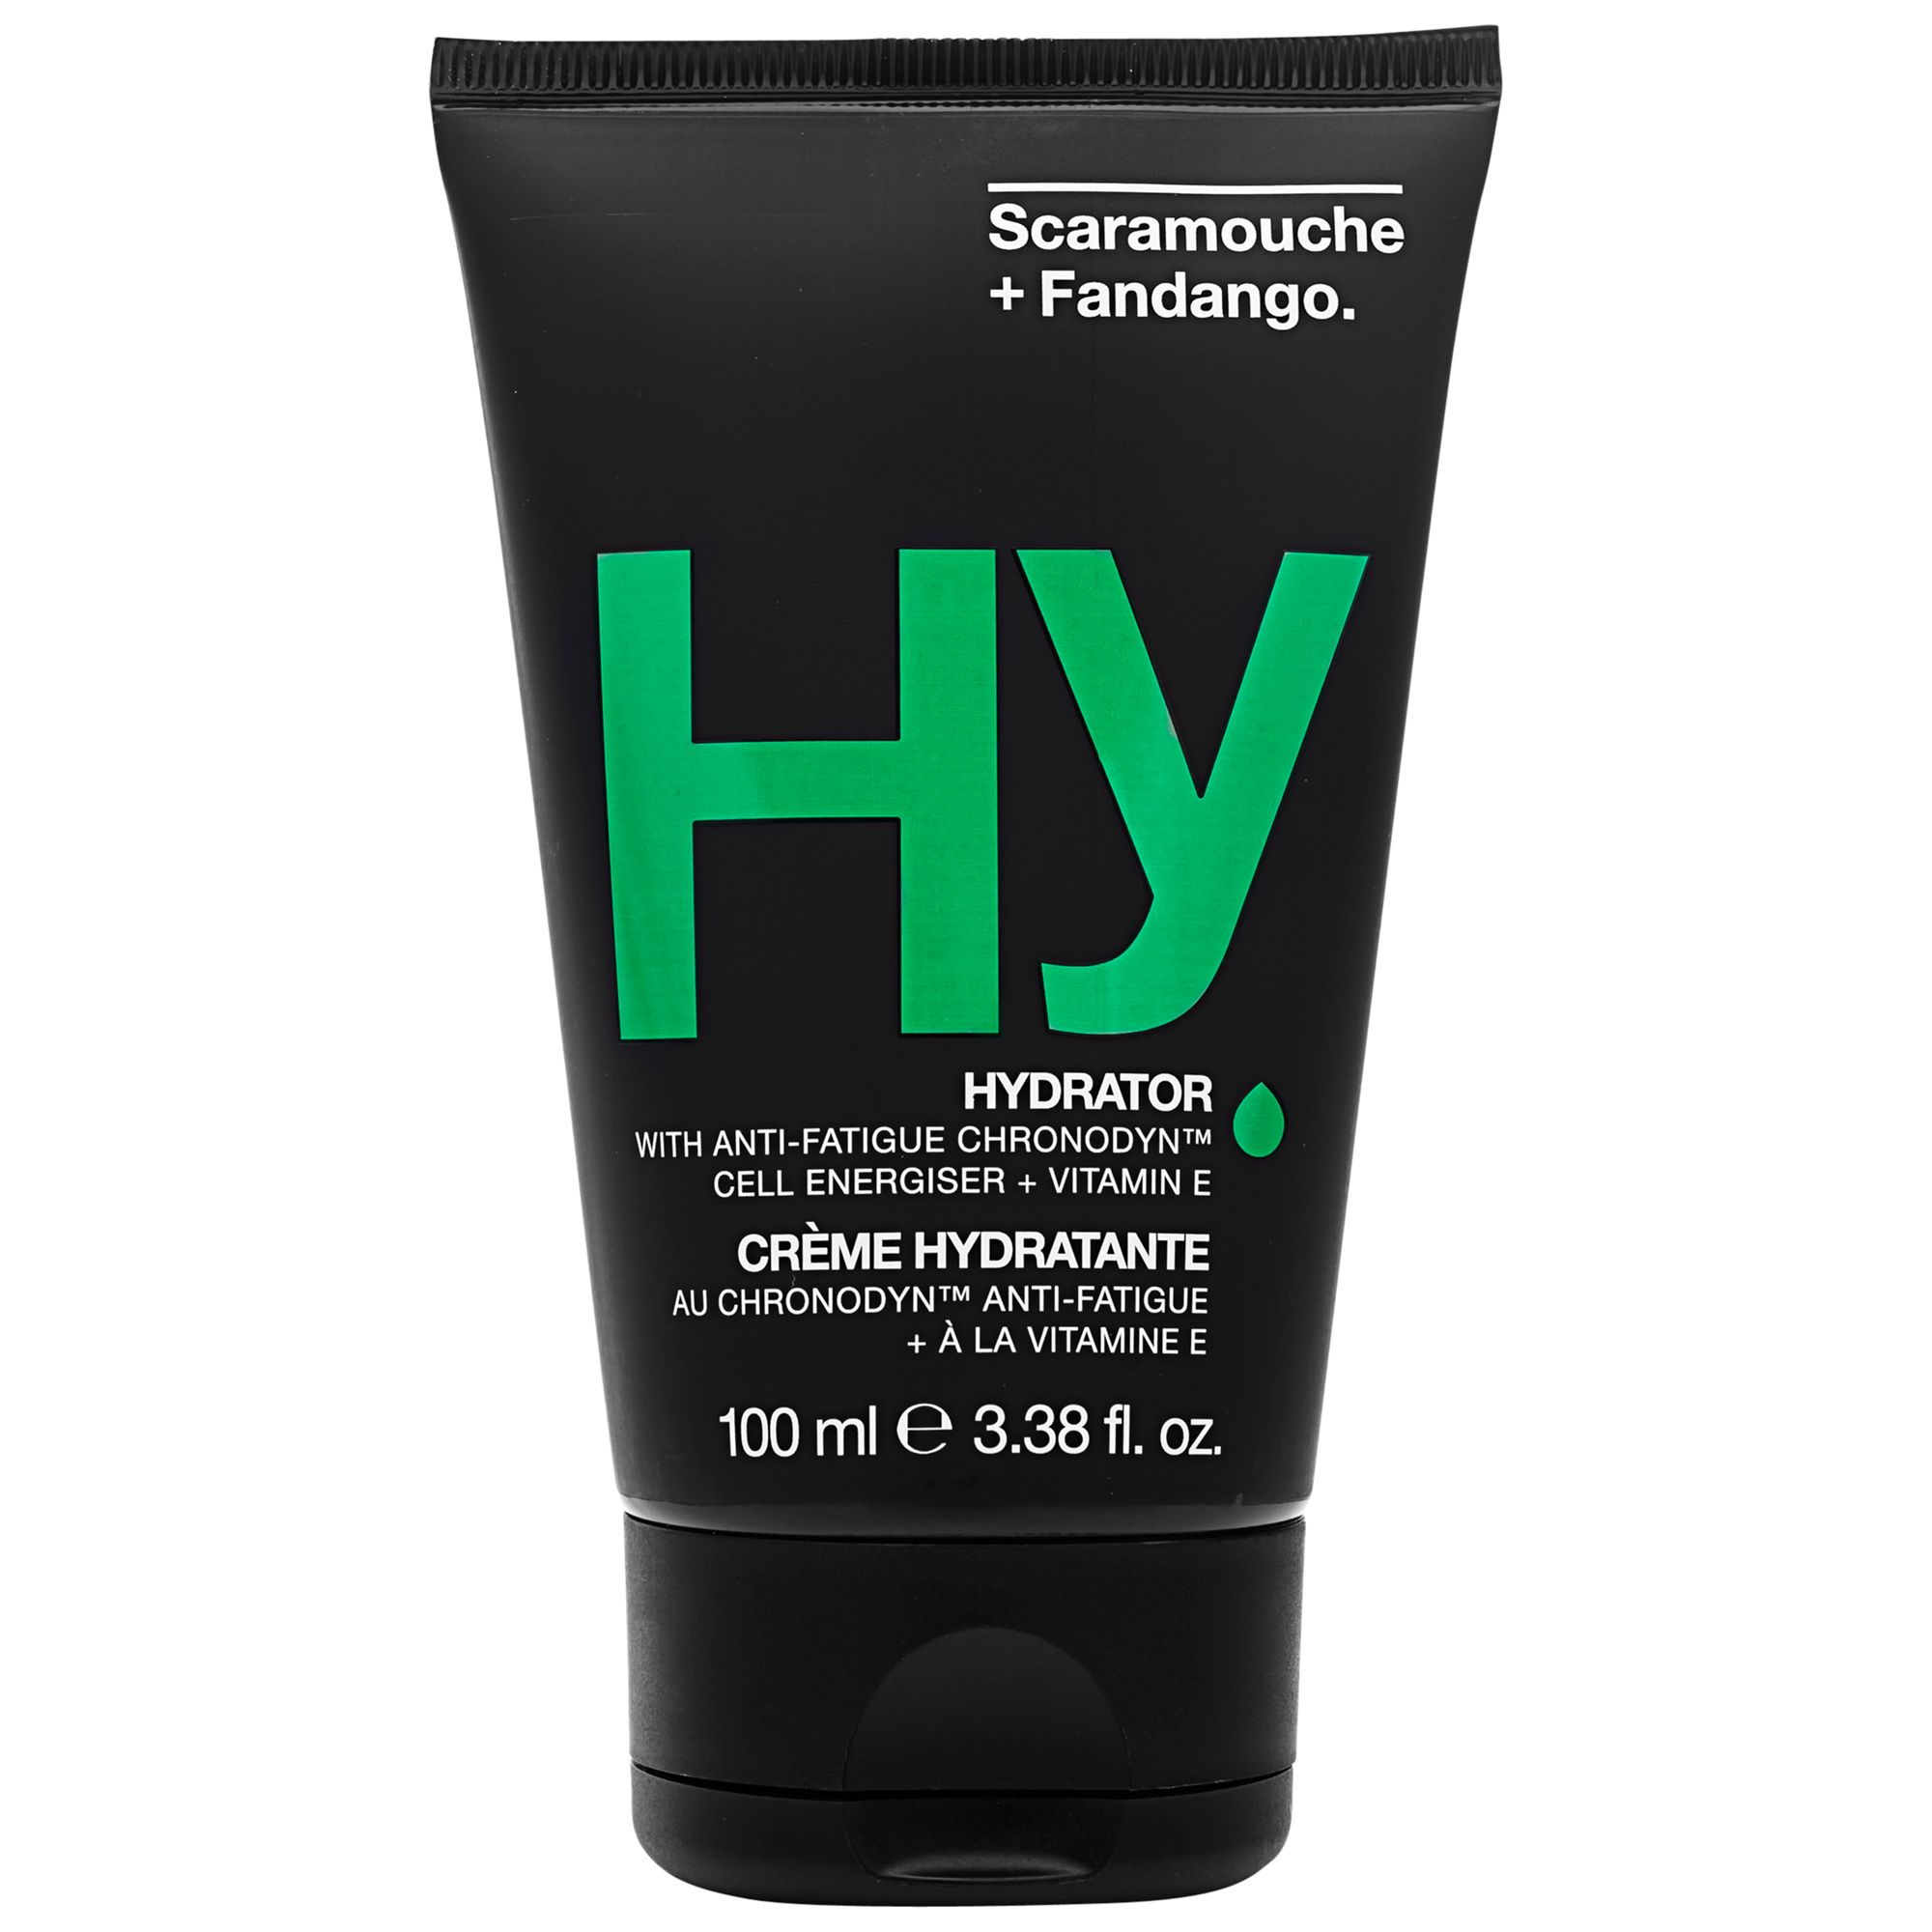 Scaramouche and Fandango Scaramouche and Fandango Hydrator, 100ml